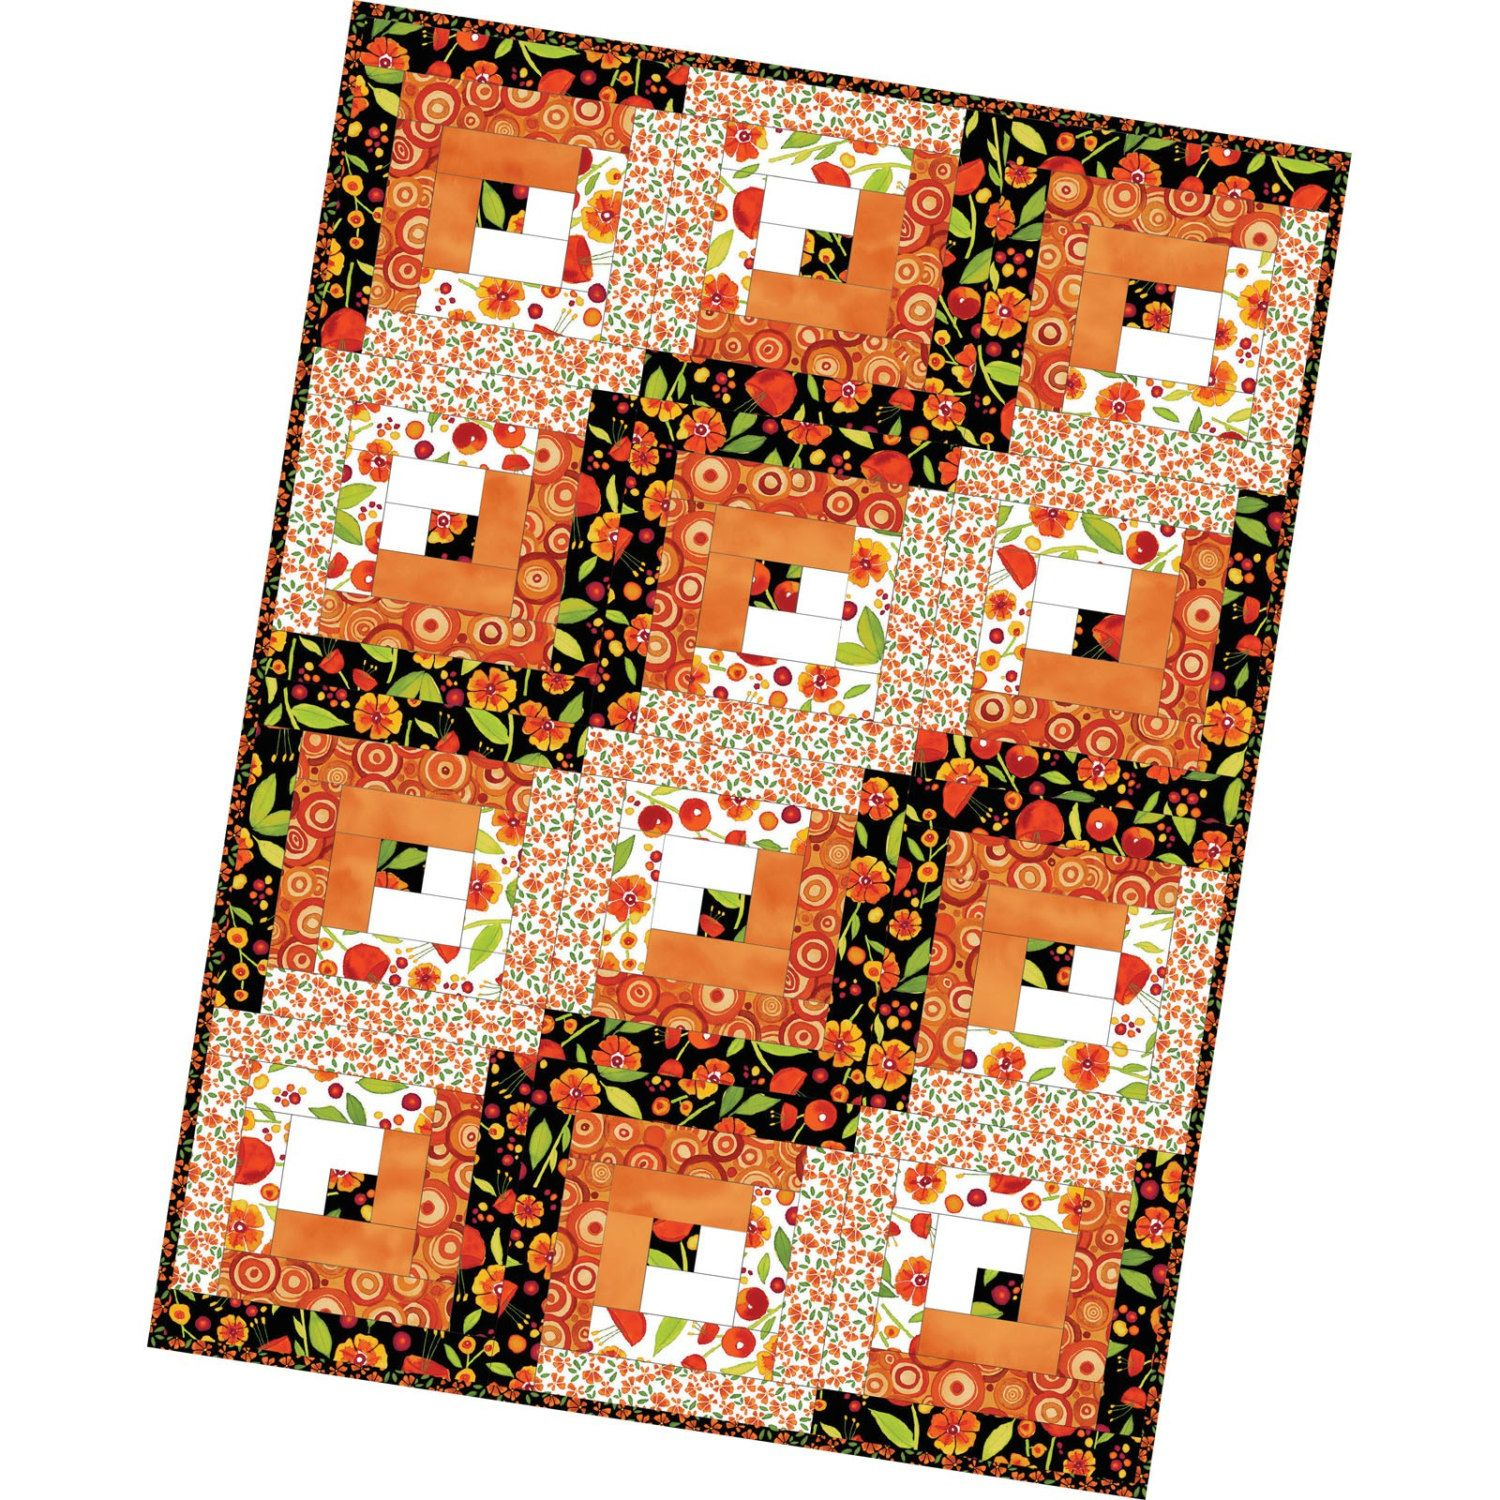 FREE Shipping Log Cabin Precut Quilt Kit Pod by Maywood Studio ... : precut quilt kit - Adamdwight.com